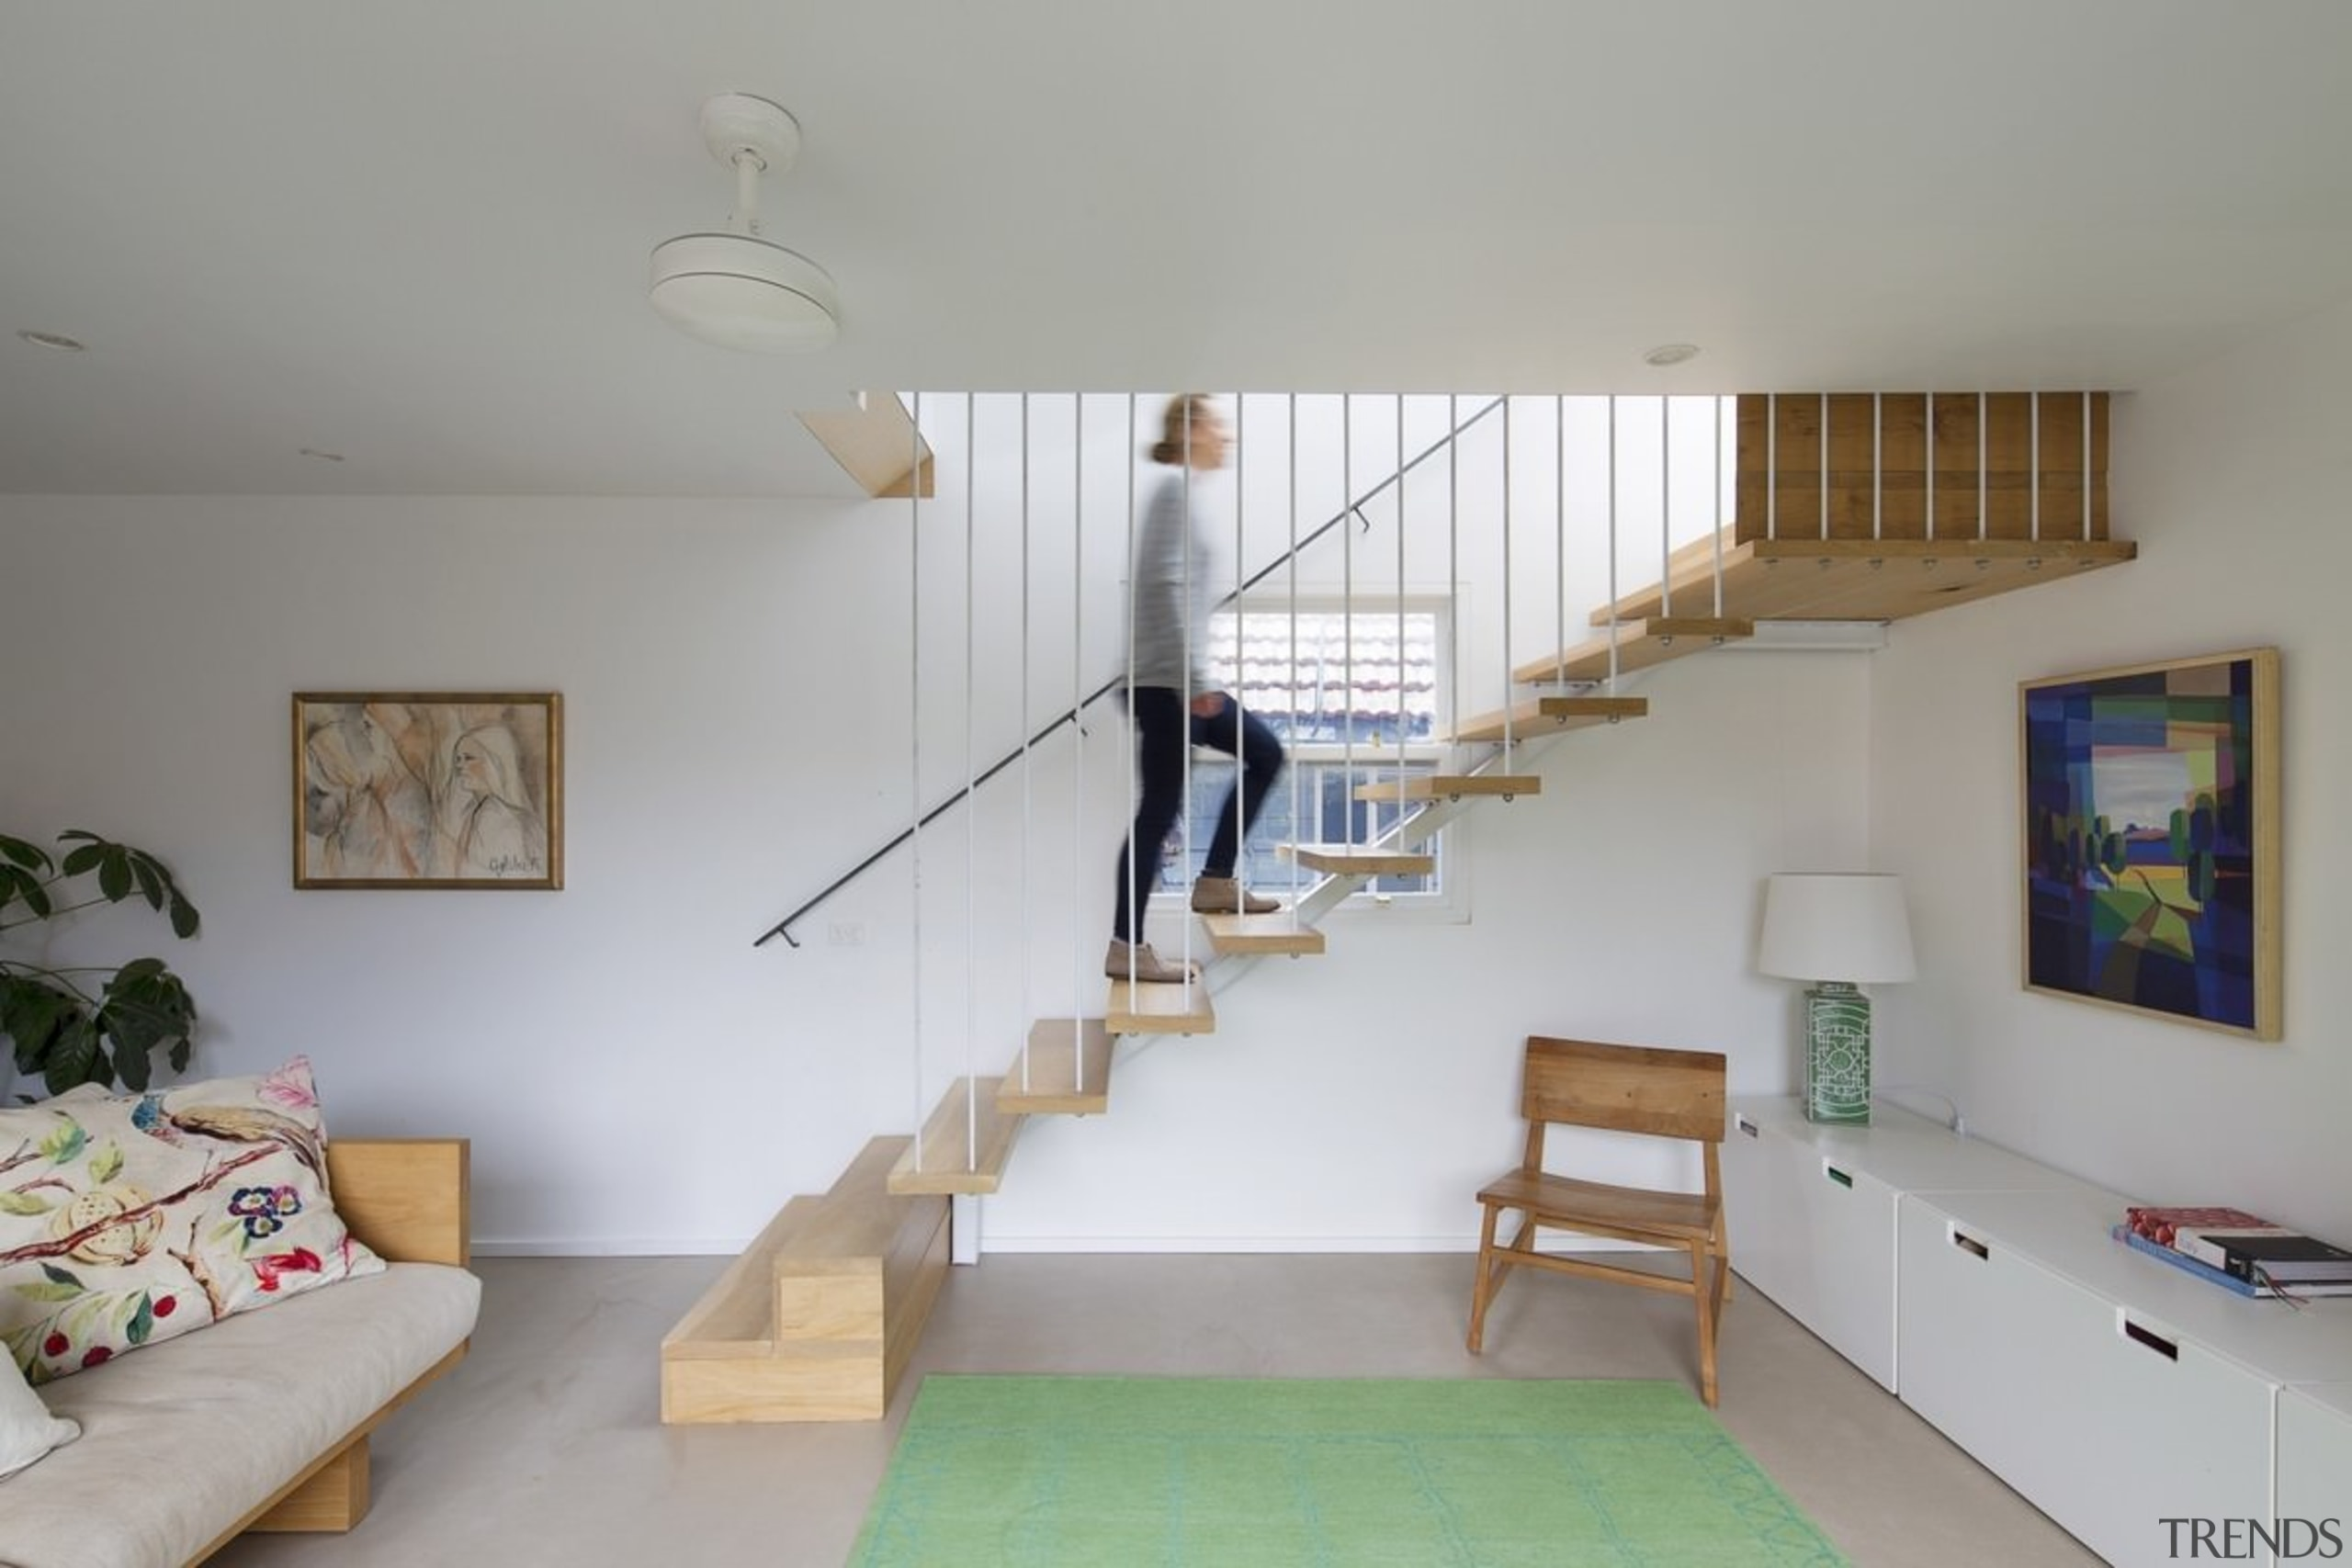 A floating stairway rises up to the second architecture, ceiling, daylighting, floor, furniture, handrail, home, house, interior design, living room, loft, real estate, room, stairs, wall, wood, gray